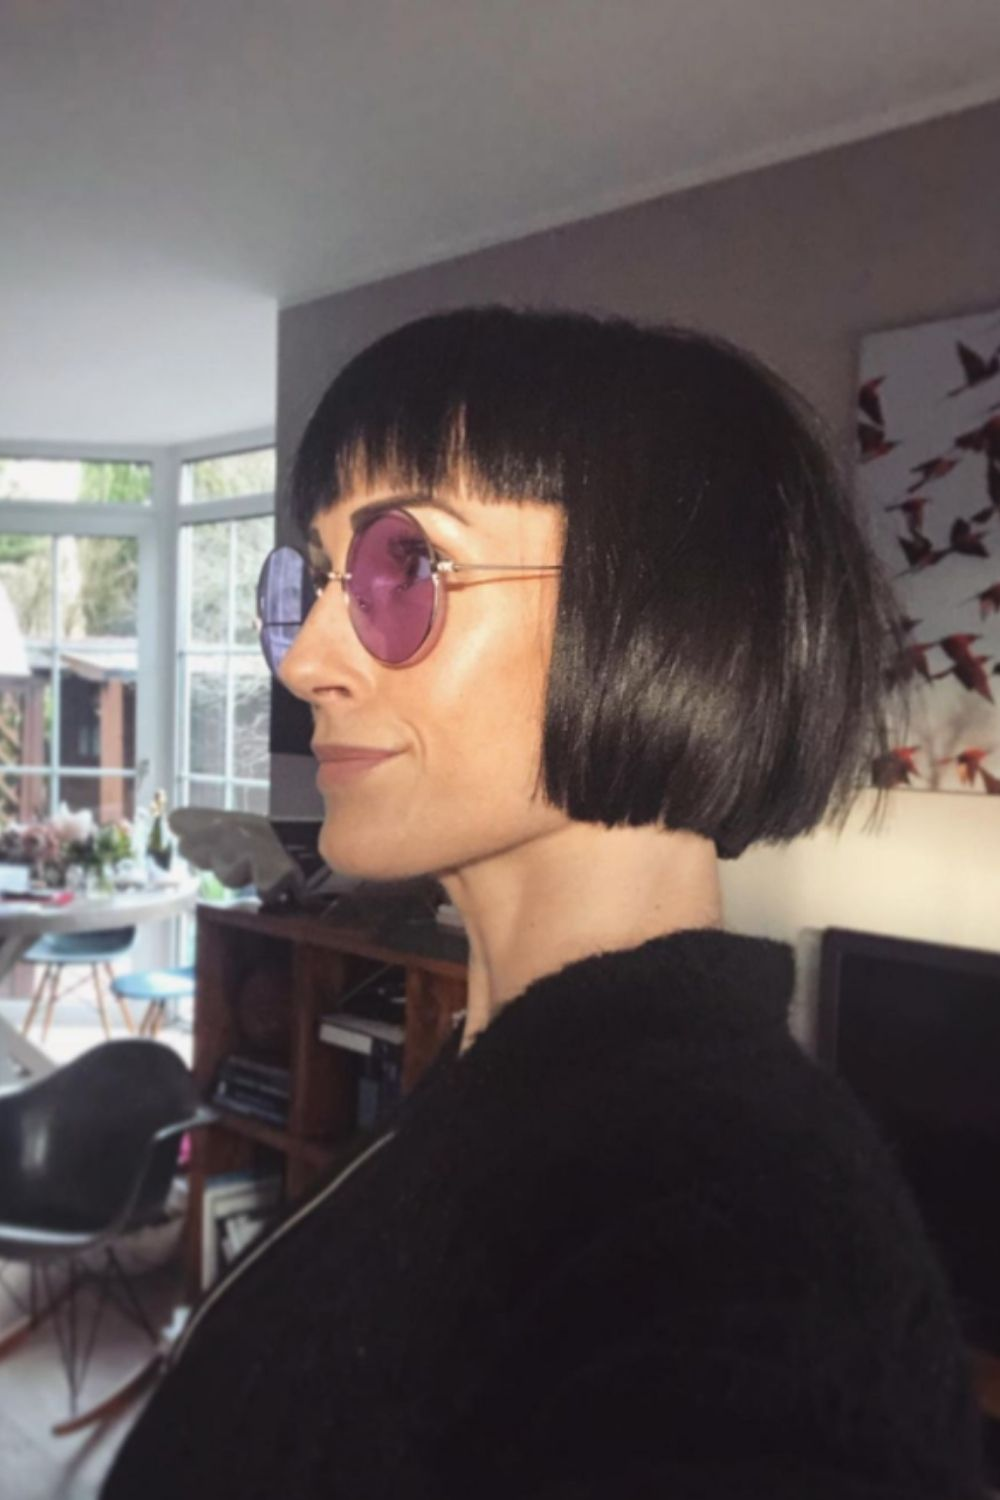 stylish short Bob with bangs to try out for the summer